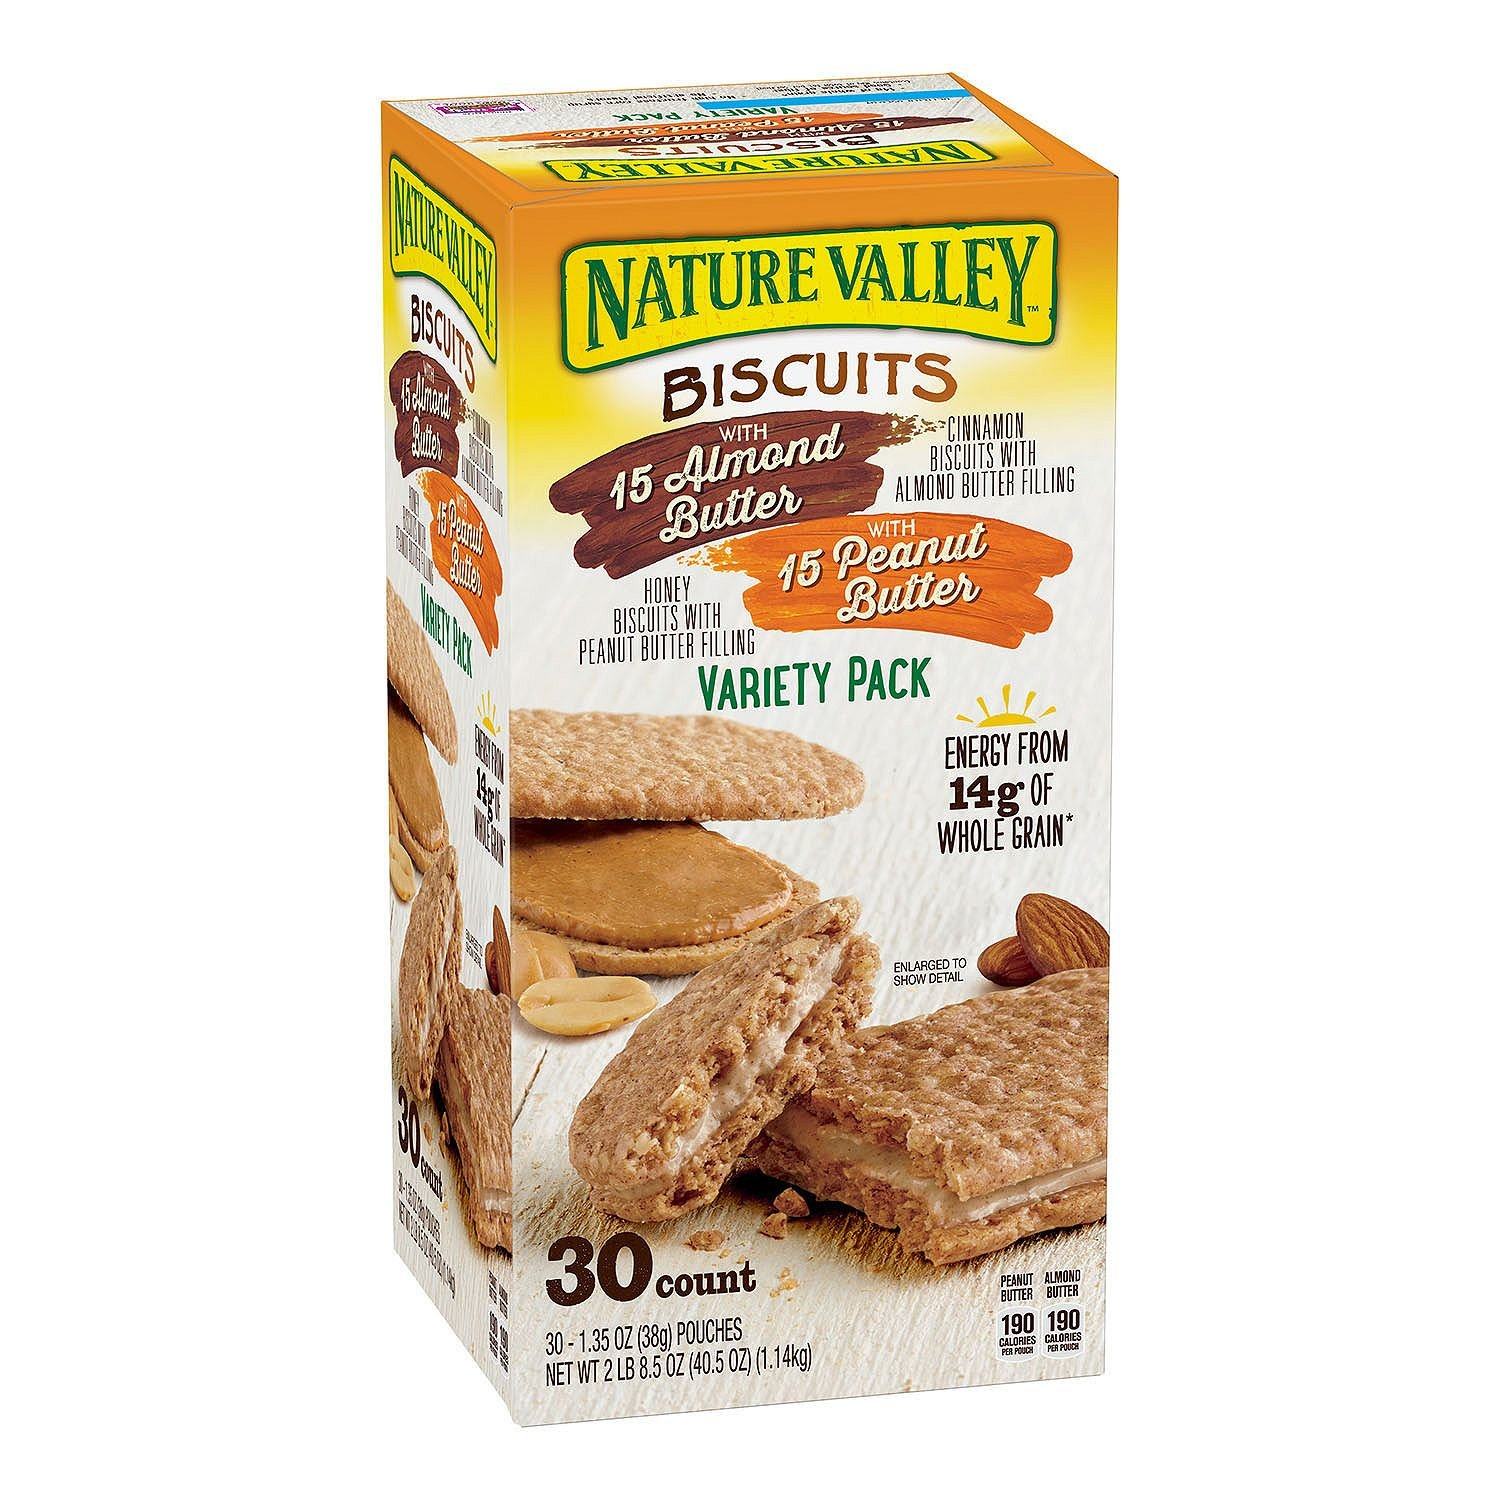 Nature Valley Biscuit Sandwich Almond Butter & Peanut Butter ( 30 ct )